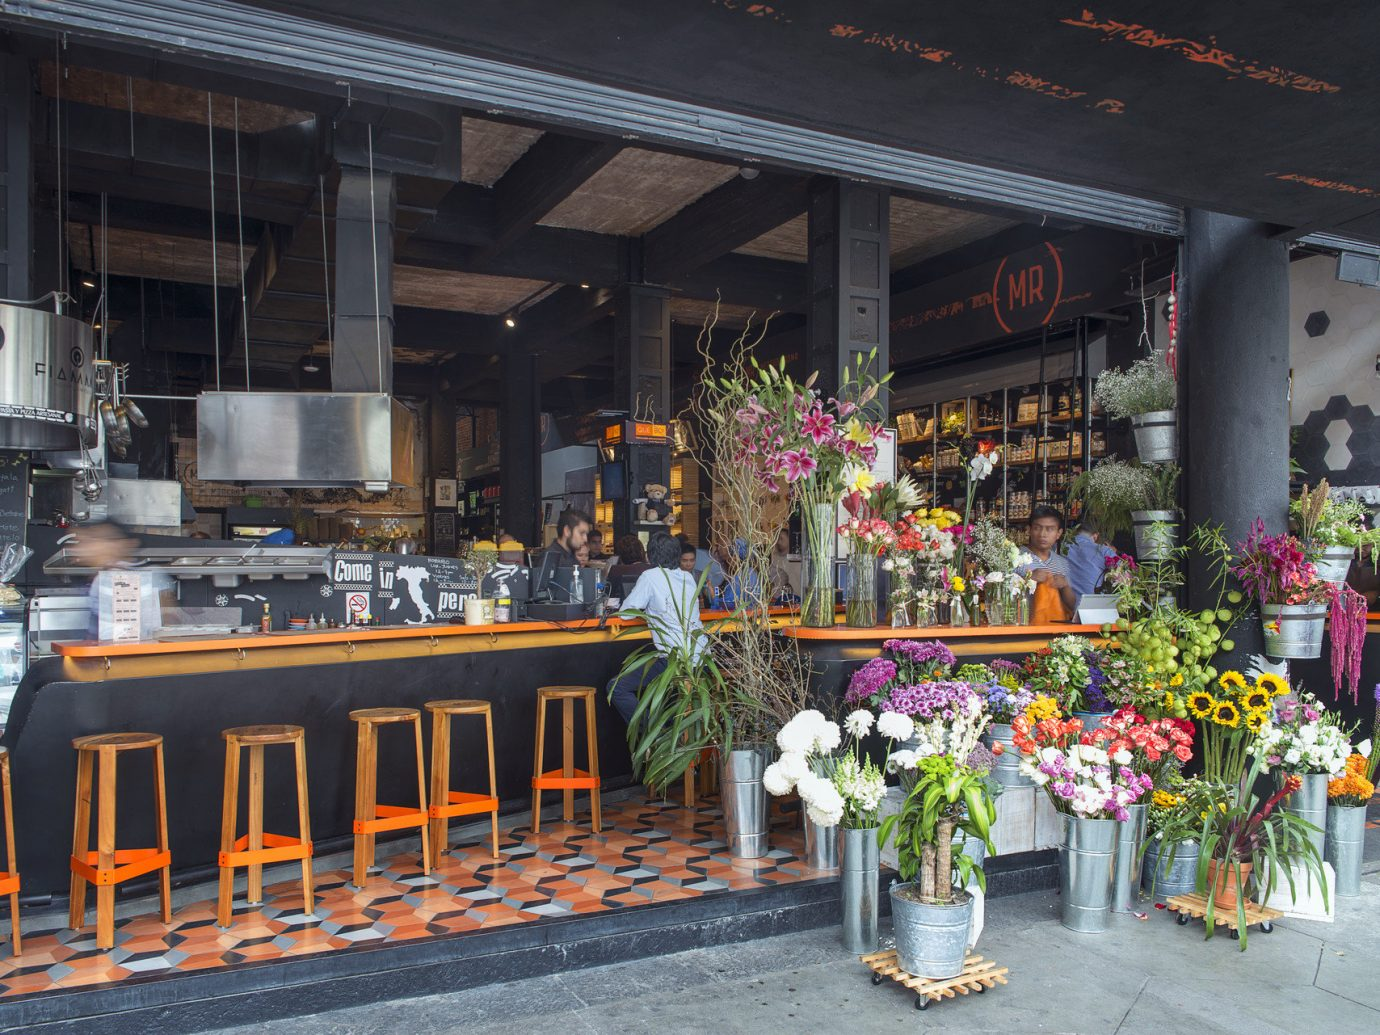 Food + Drink building outdoor floristry retail restaurant colorful